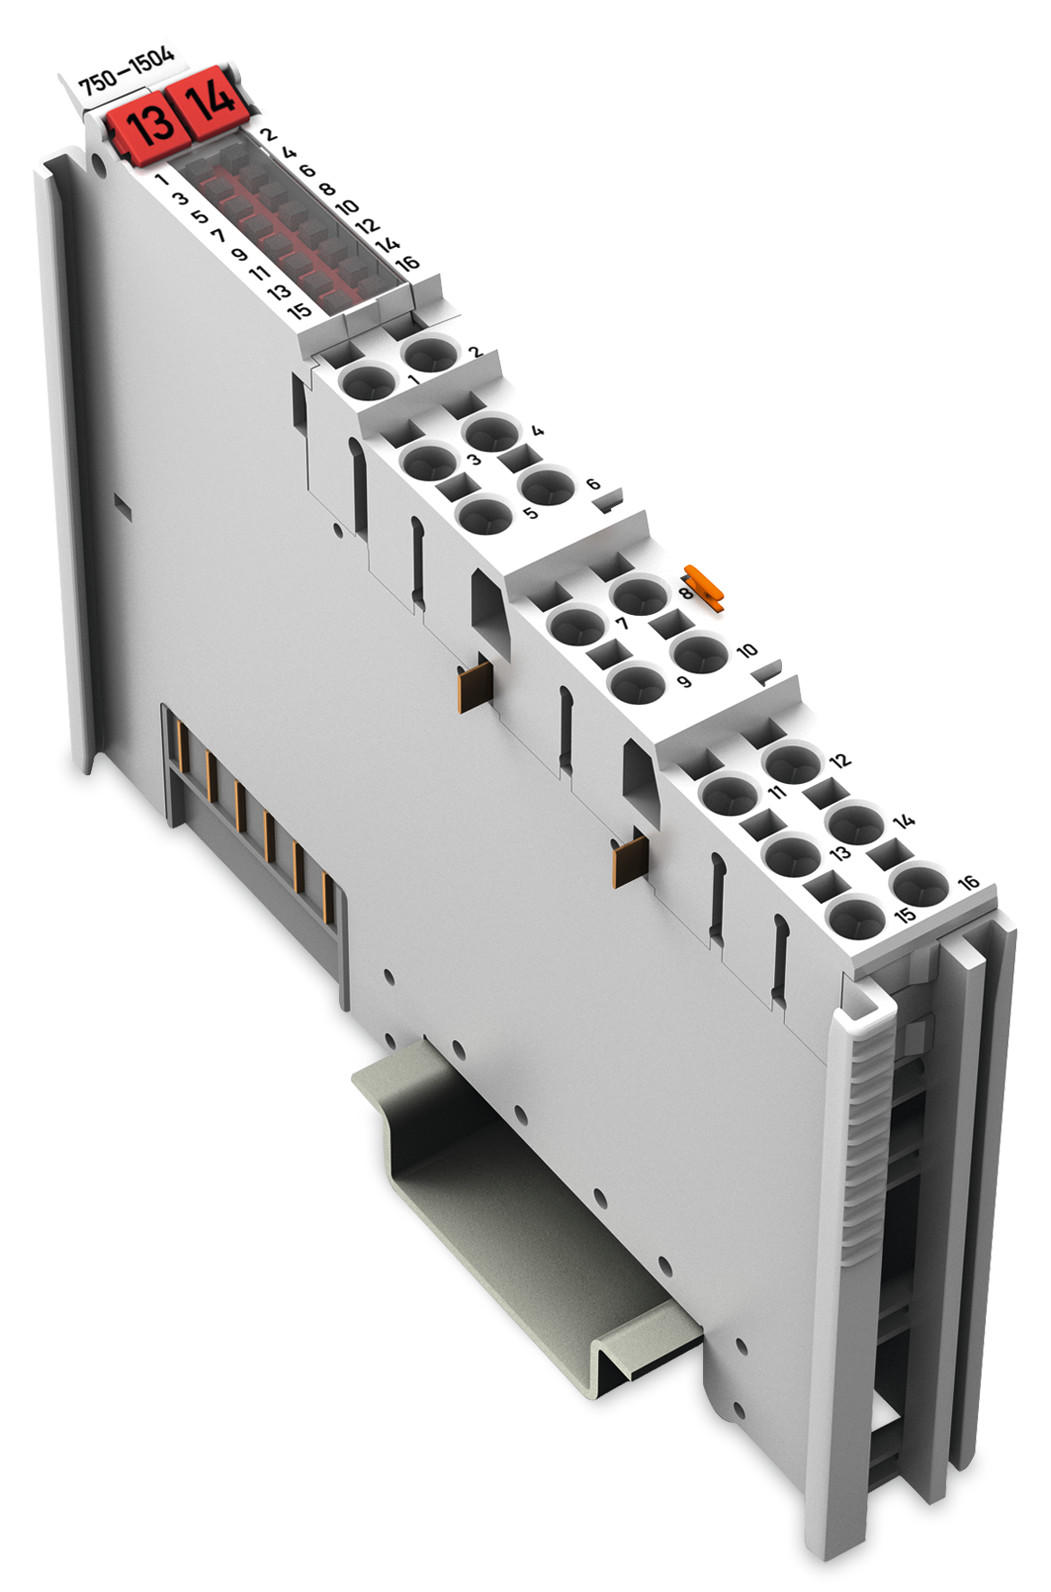 16-channel digital output; 24 VDC; 0.5 A